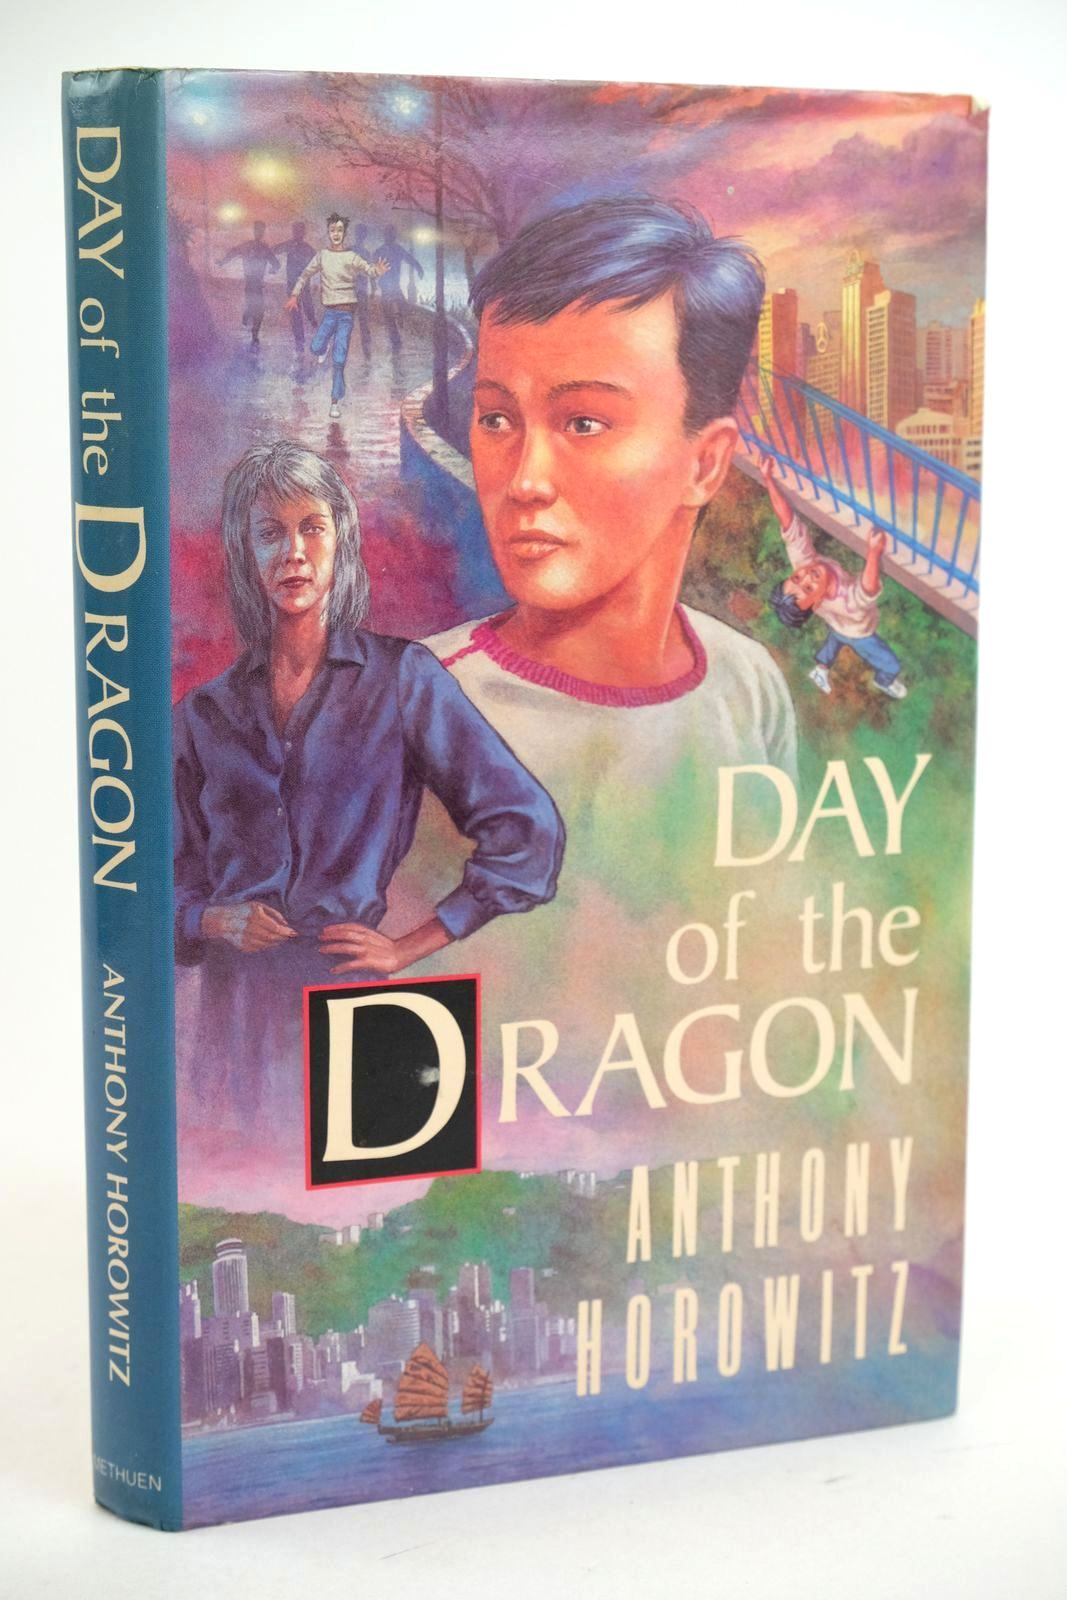 Photo of DAY OF THE DRAGON written by Horowitz, Anthony published by Methuen Children's Books (STOCK CODE: 1318960)  for sale by Stella & Rose's Books